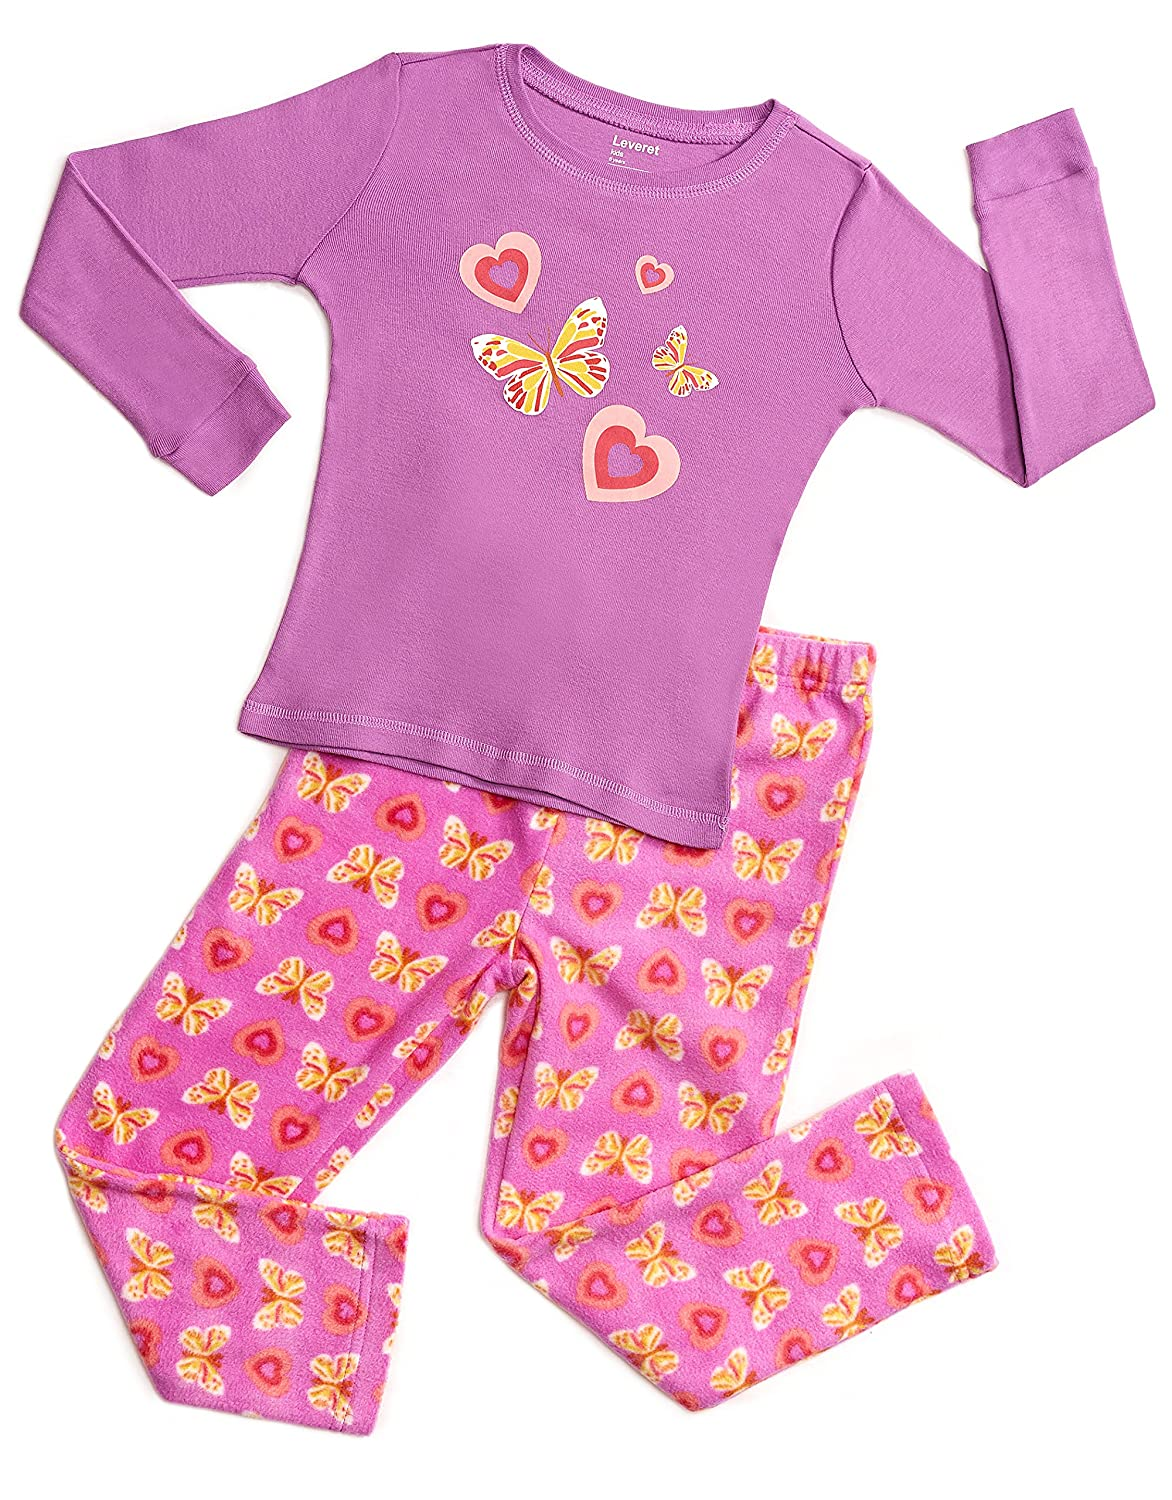 37c9ec098 Amazon.com  Leveret Kids   Toddler Pajamas Girls 2 Piece Pjs Set ...